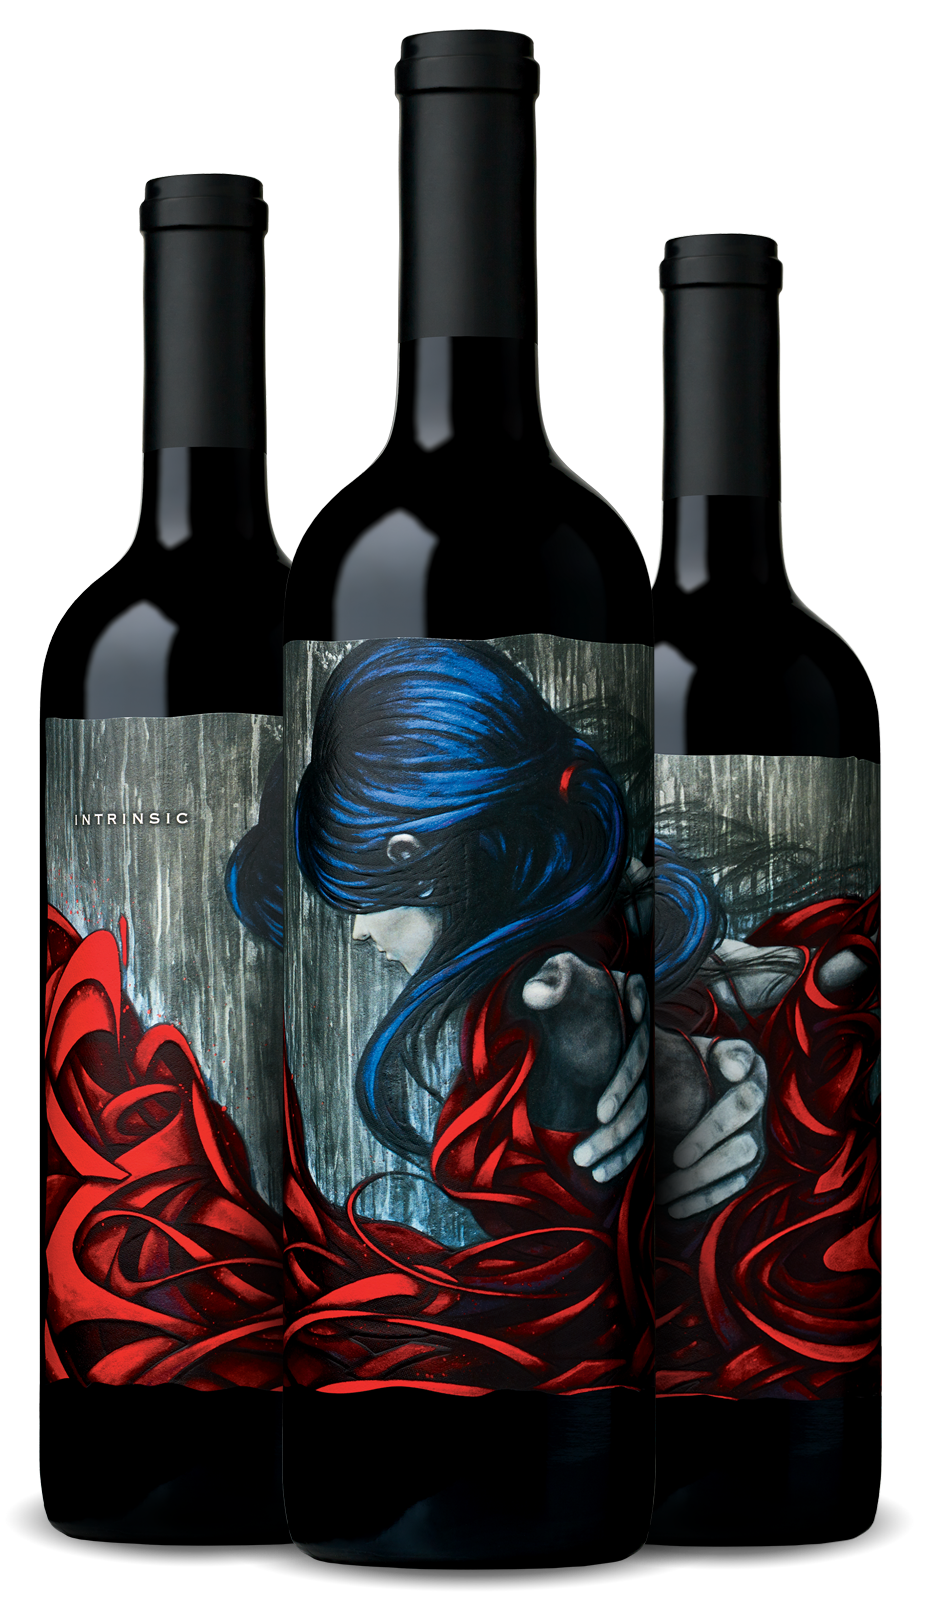 3-bottle image of Red Blend